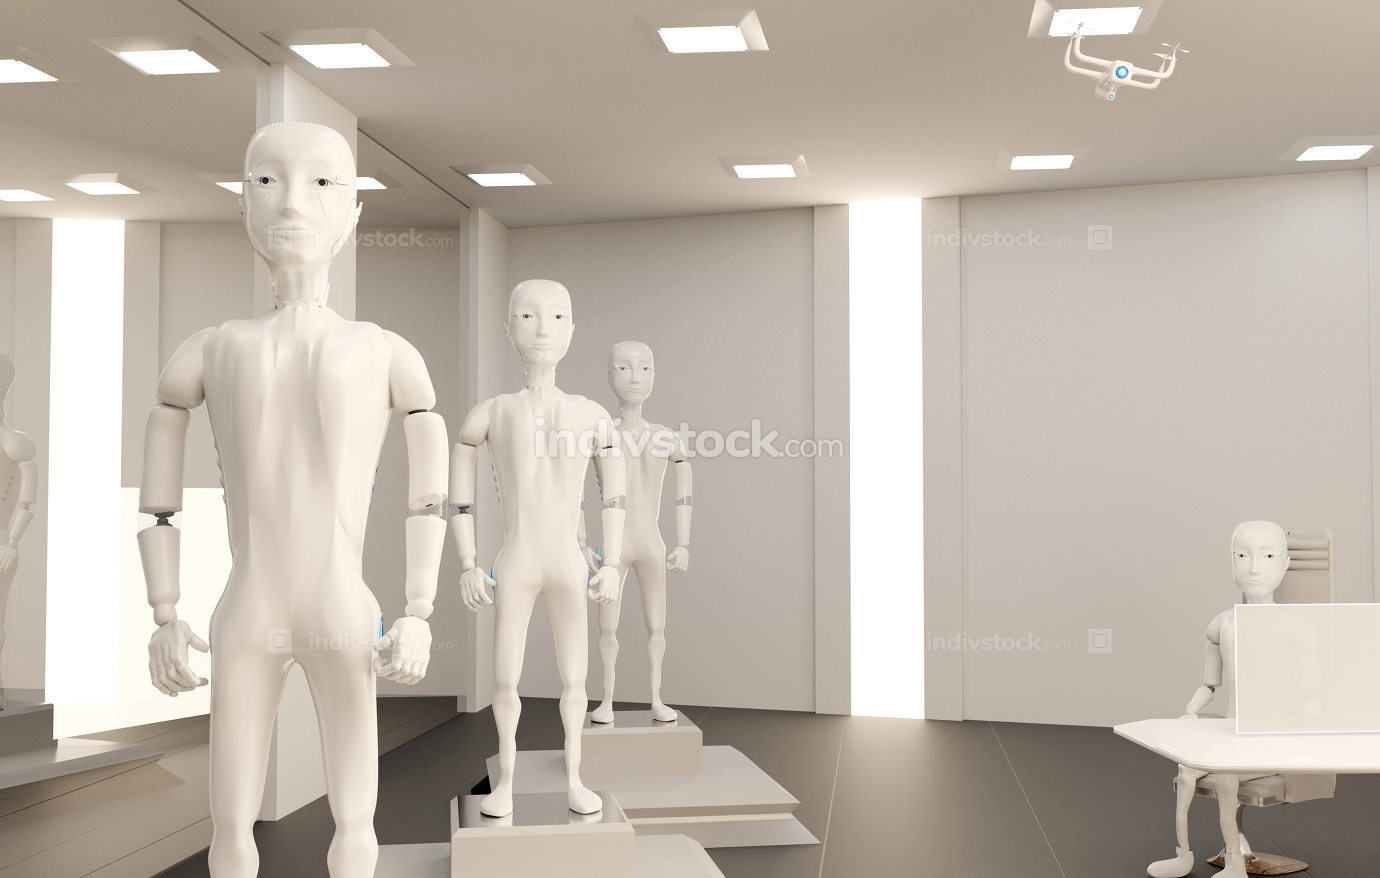 buy a robot in the robot shop 3d-illustration